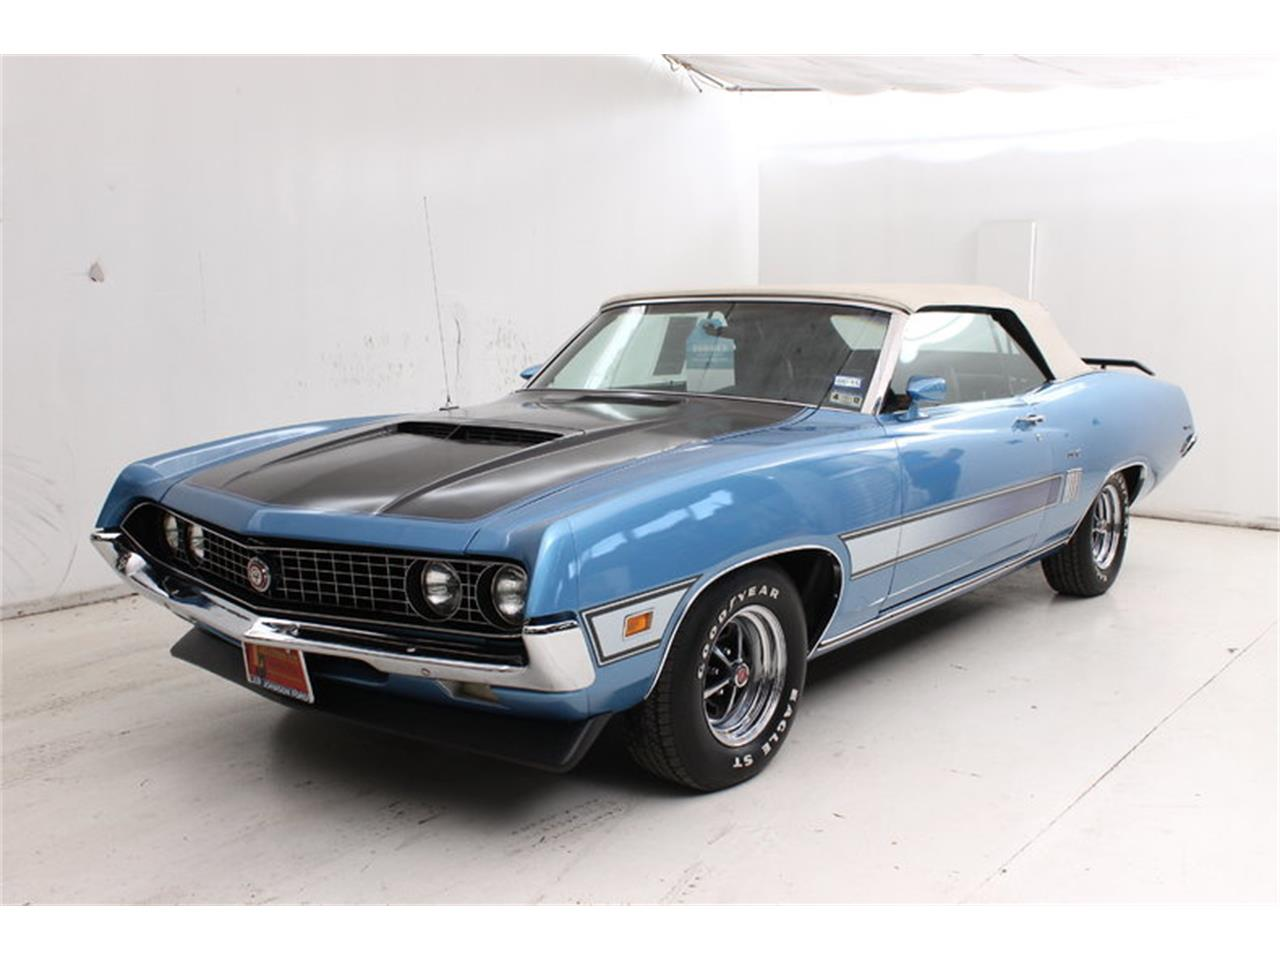 For Sale: 1970 Ford Torino in Conroe, Texas